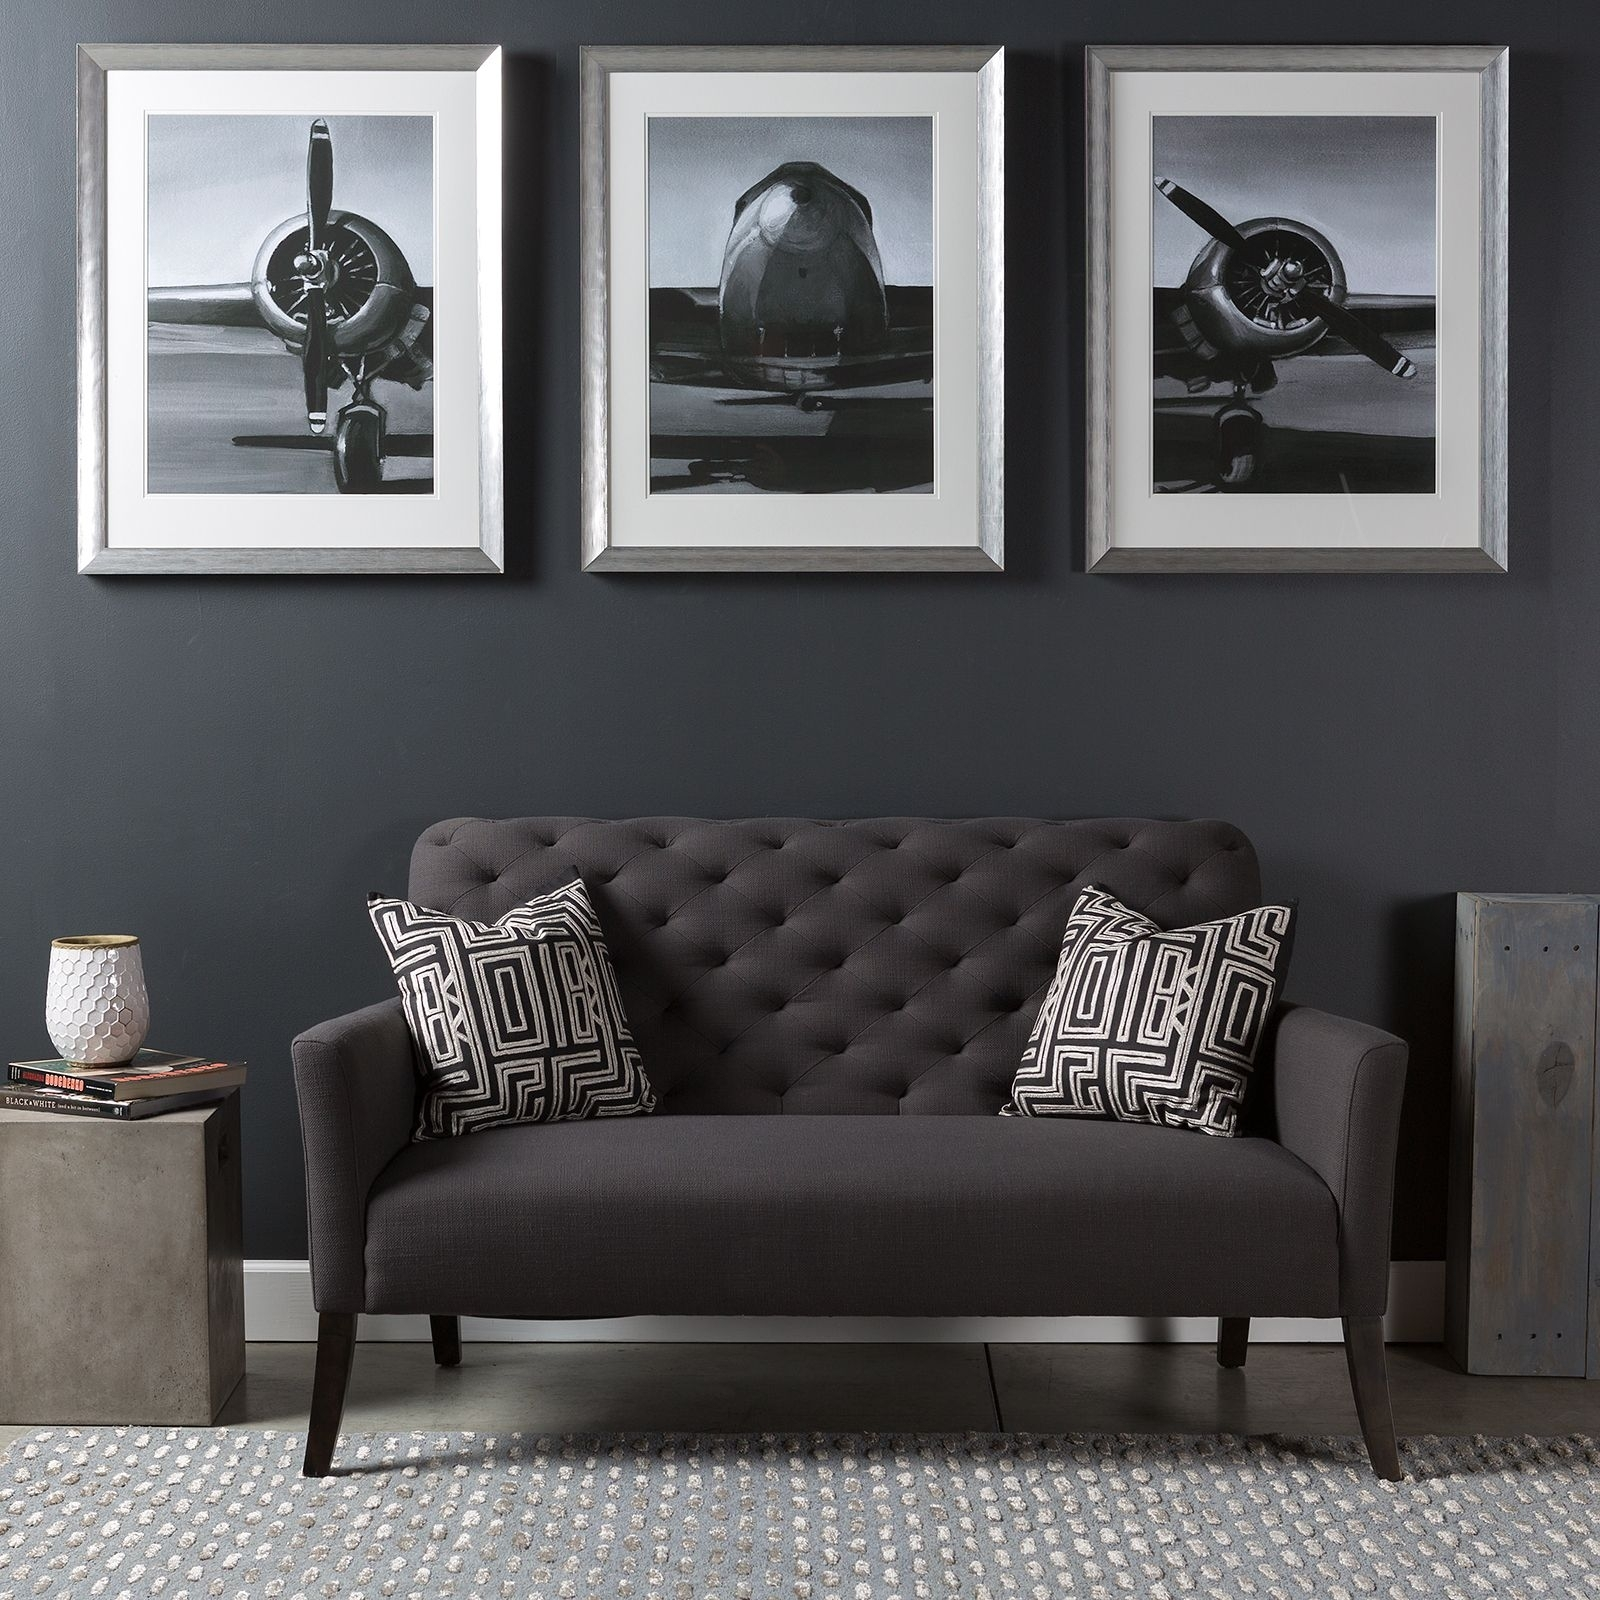 Triptych Wall Art Piece With A Modern Industrial Flare; A Series Of Pertaining To Latest Airplane Wall Art (View 5 of 20)